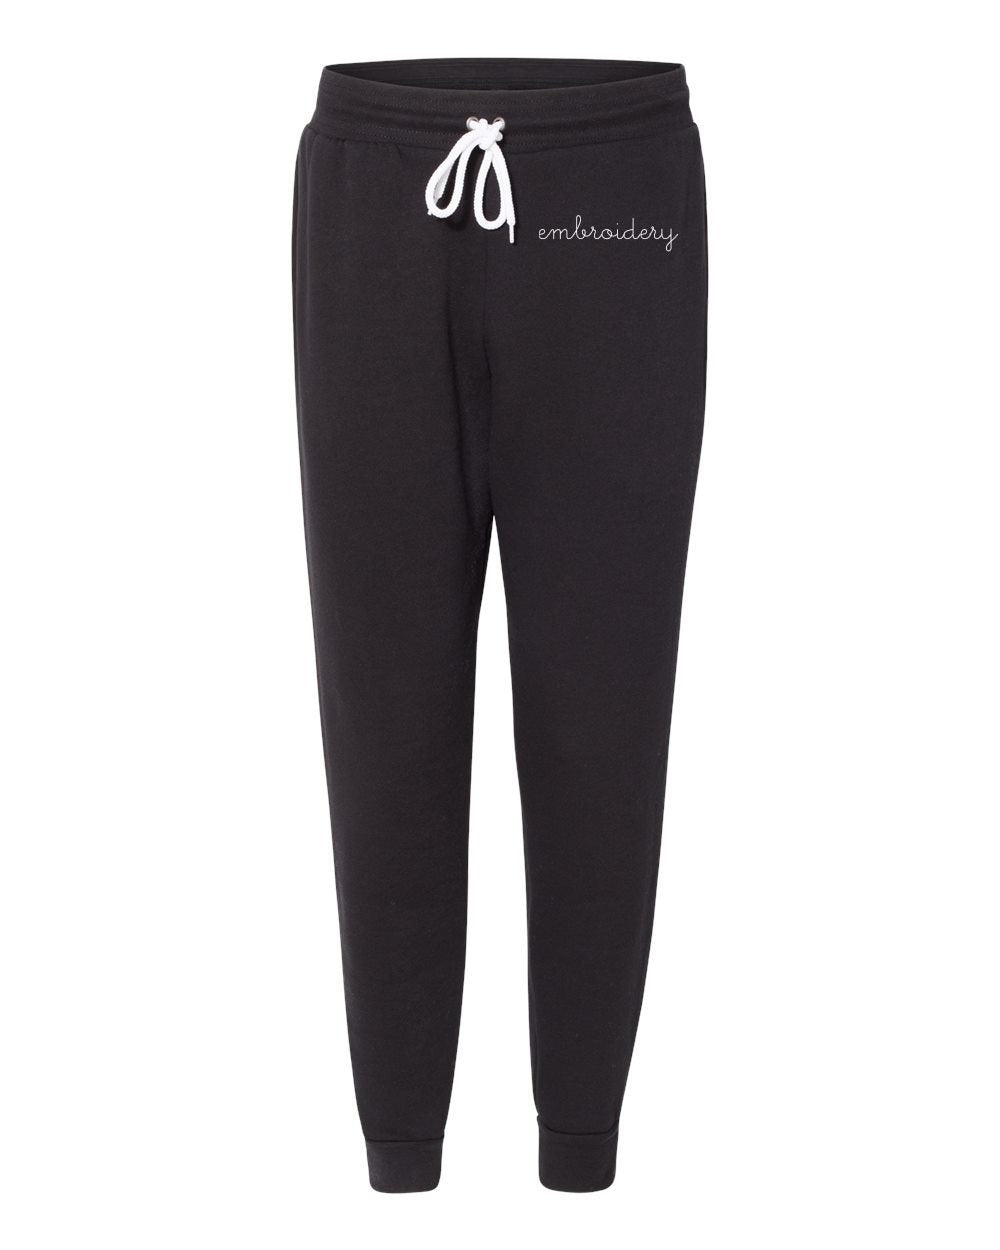 New! Adult Jogger Sweatpants (Unisex) juju + stitch Black / XS custom personalized script embroidered jogger sweatpants